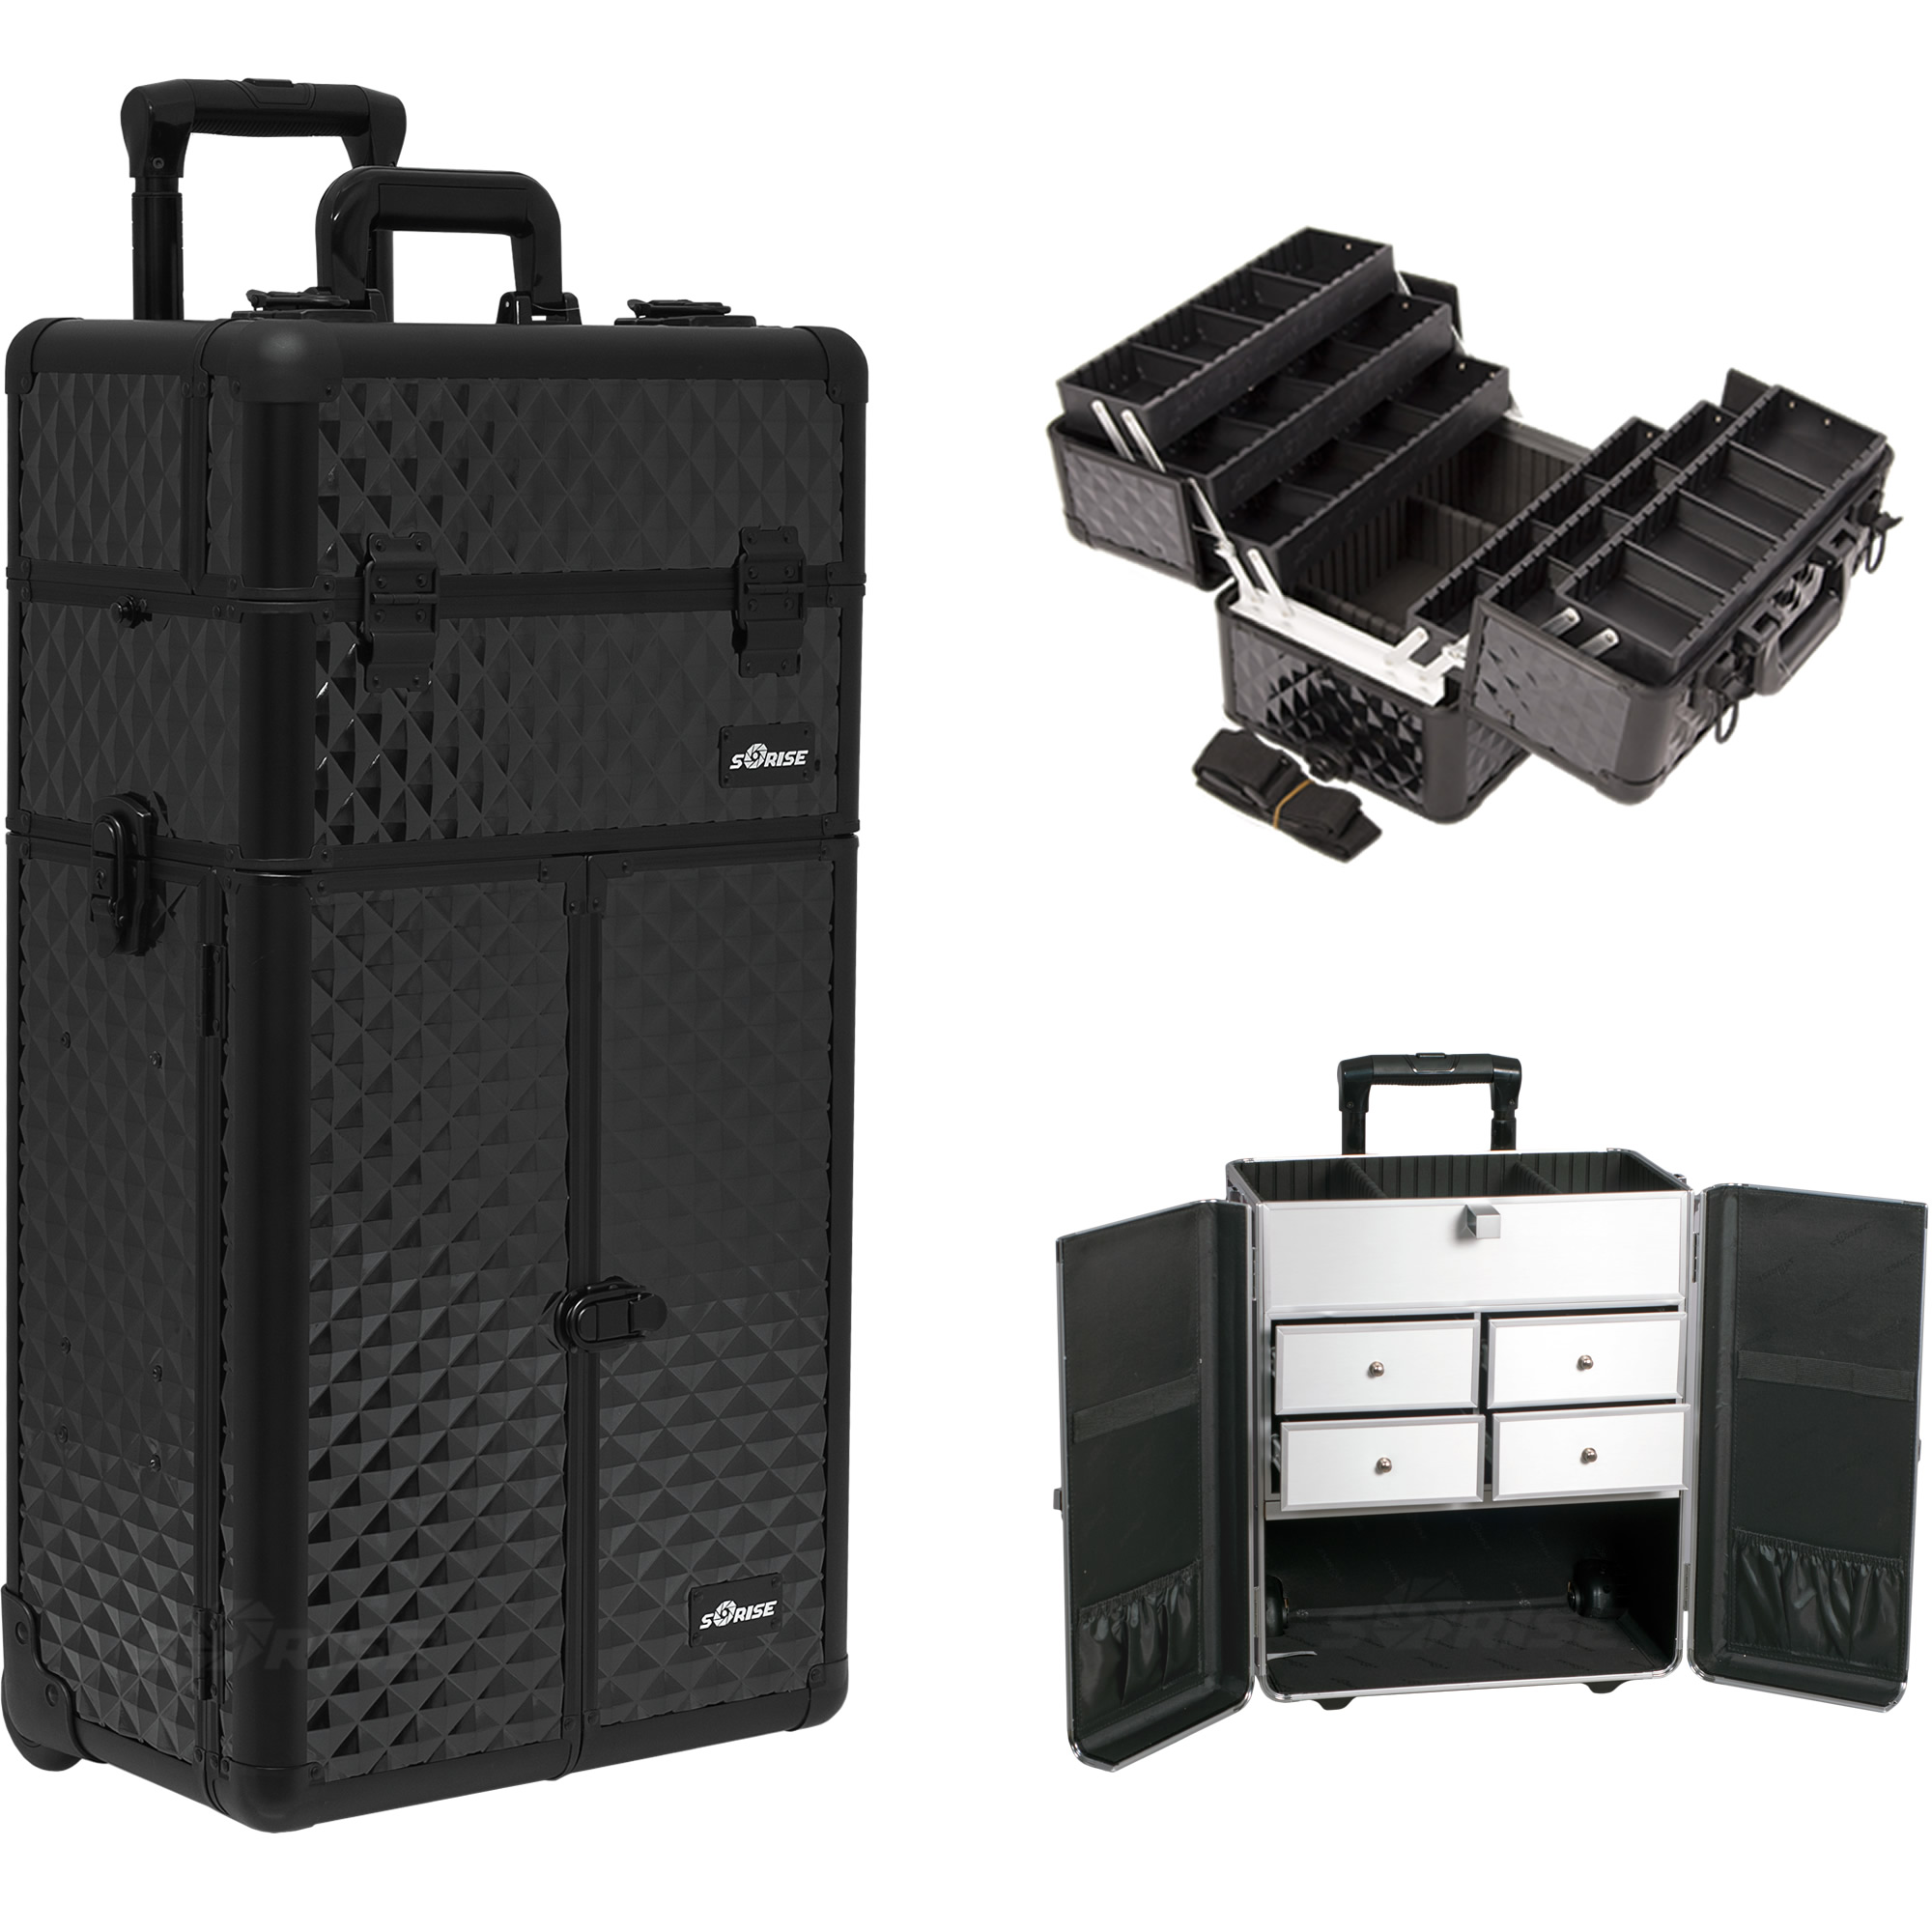 Sunrise Black Diamond Professional Rolling Aluminum Cosmetic Makeup French Door Opening Case with Split Drawers and 6-Tiers Extendable Trays with Dividers I3465